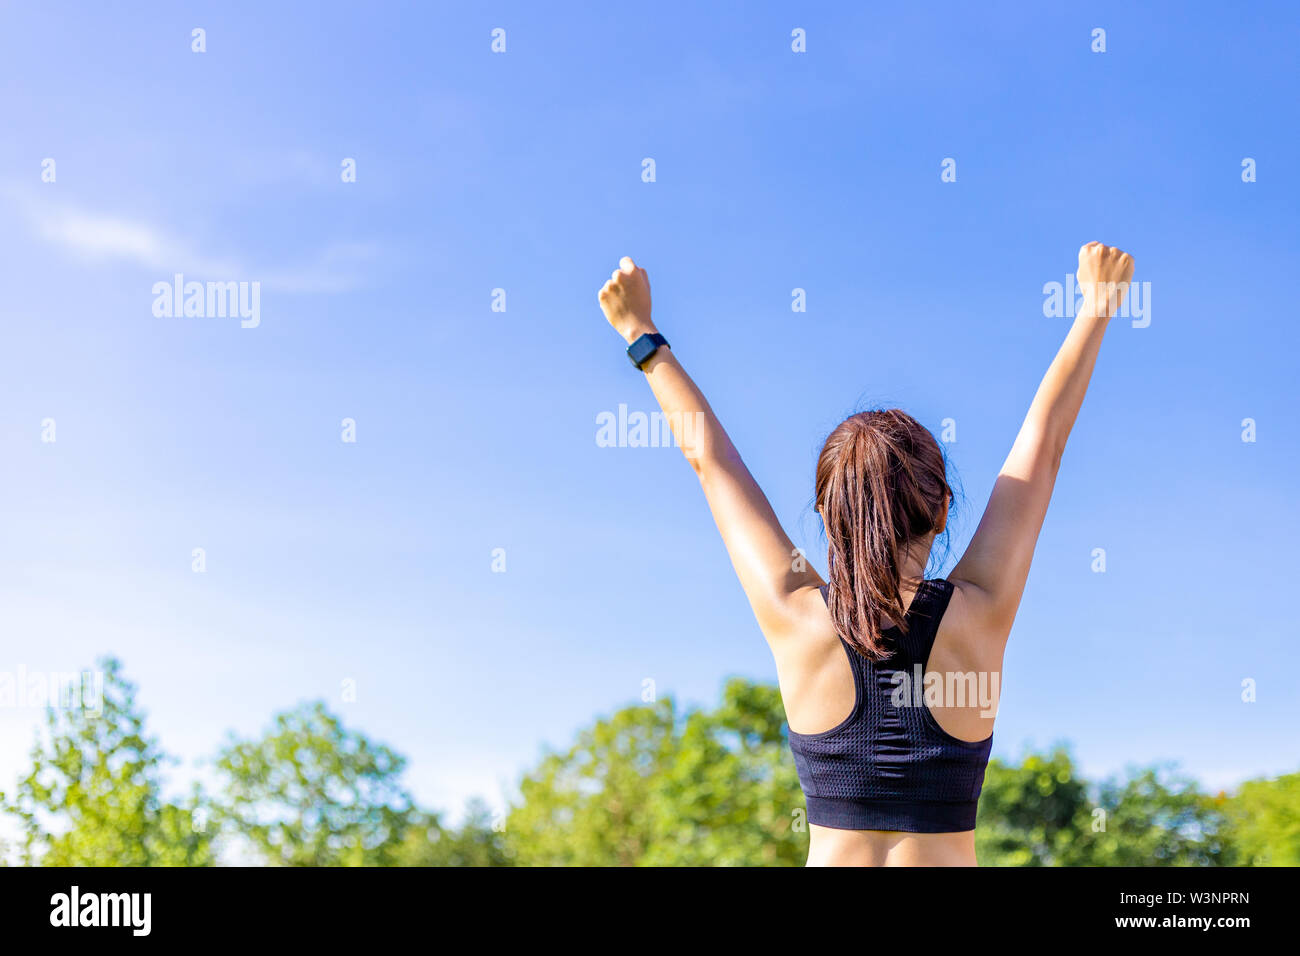 Back view of a woman in stretching up her arms and fists happily at an outdoor field with blurred trees and clear blue sky background on a bright sunn - Stock Image